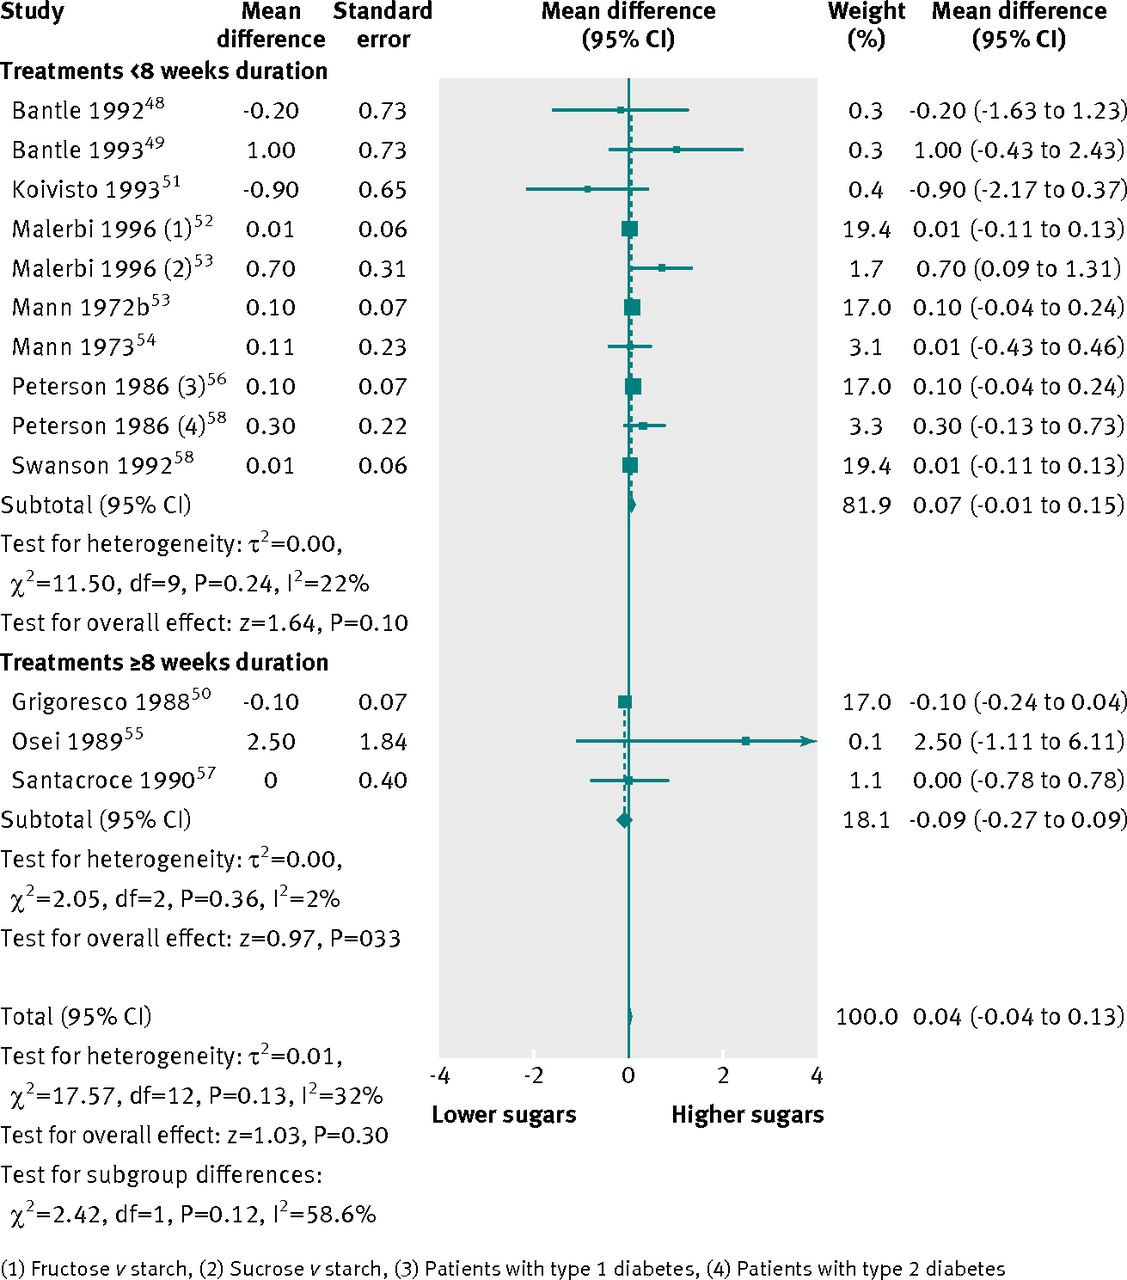 Dietary sugars and body weight: systematic review and meta